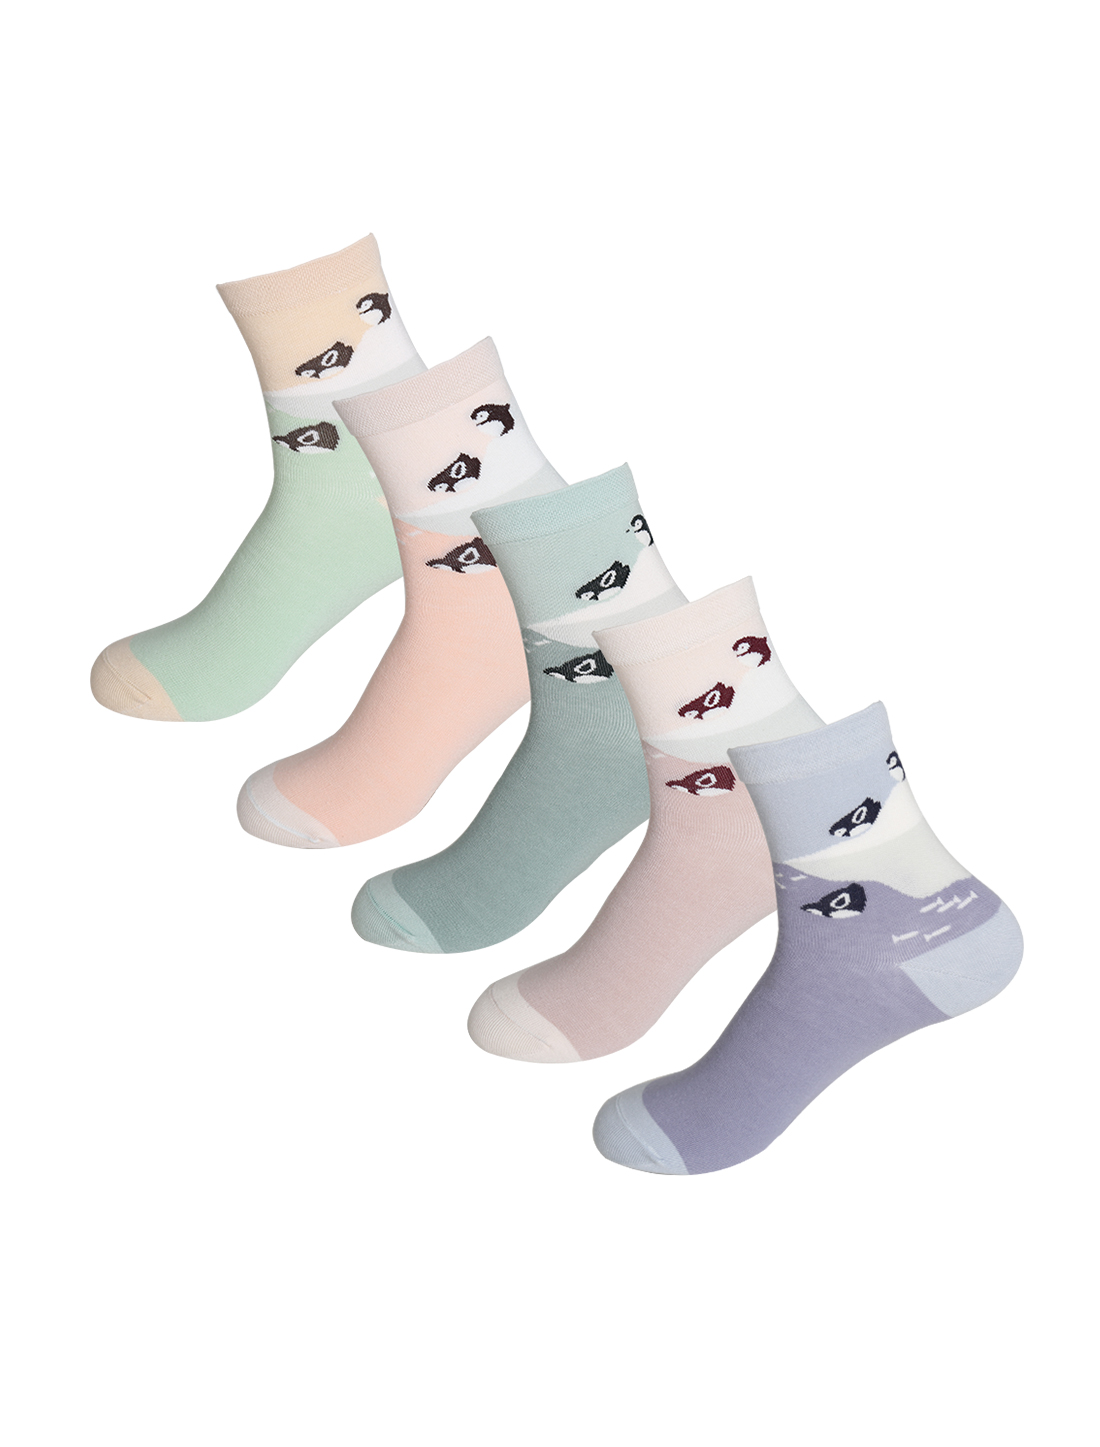 Women 5 Pack Stretchy Penguin Fish Crew Socks Assorted 9-11